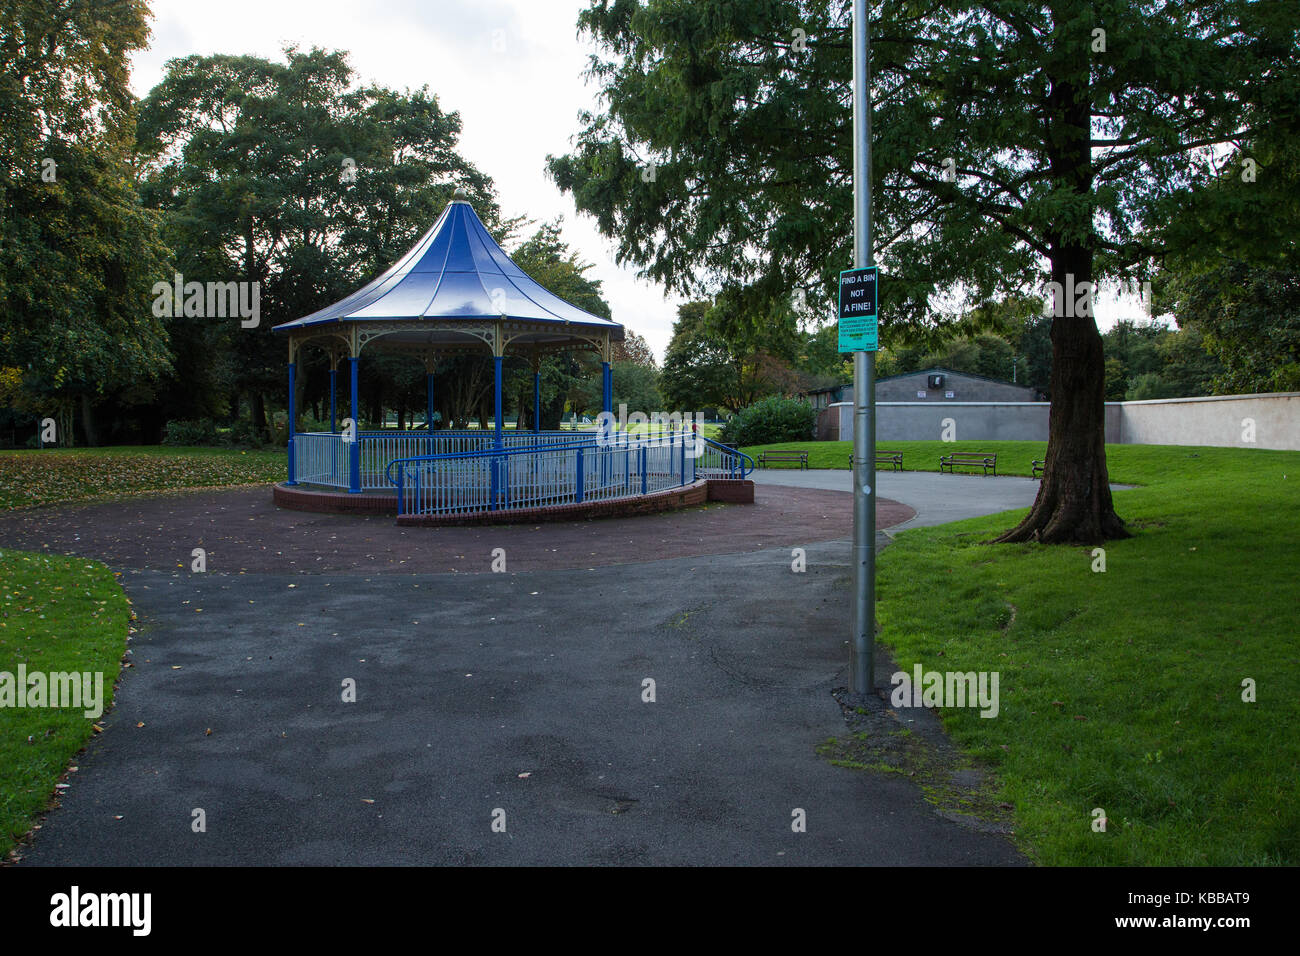 Pennington Park bandstand In Leigh, England, UK - Stock Image